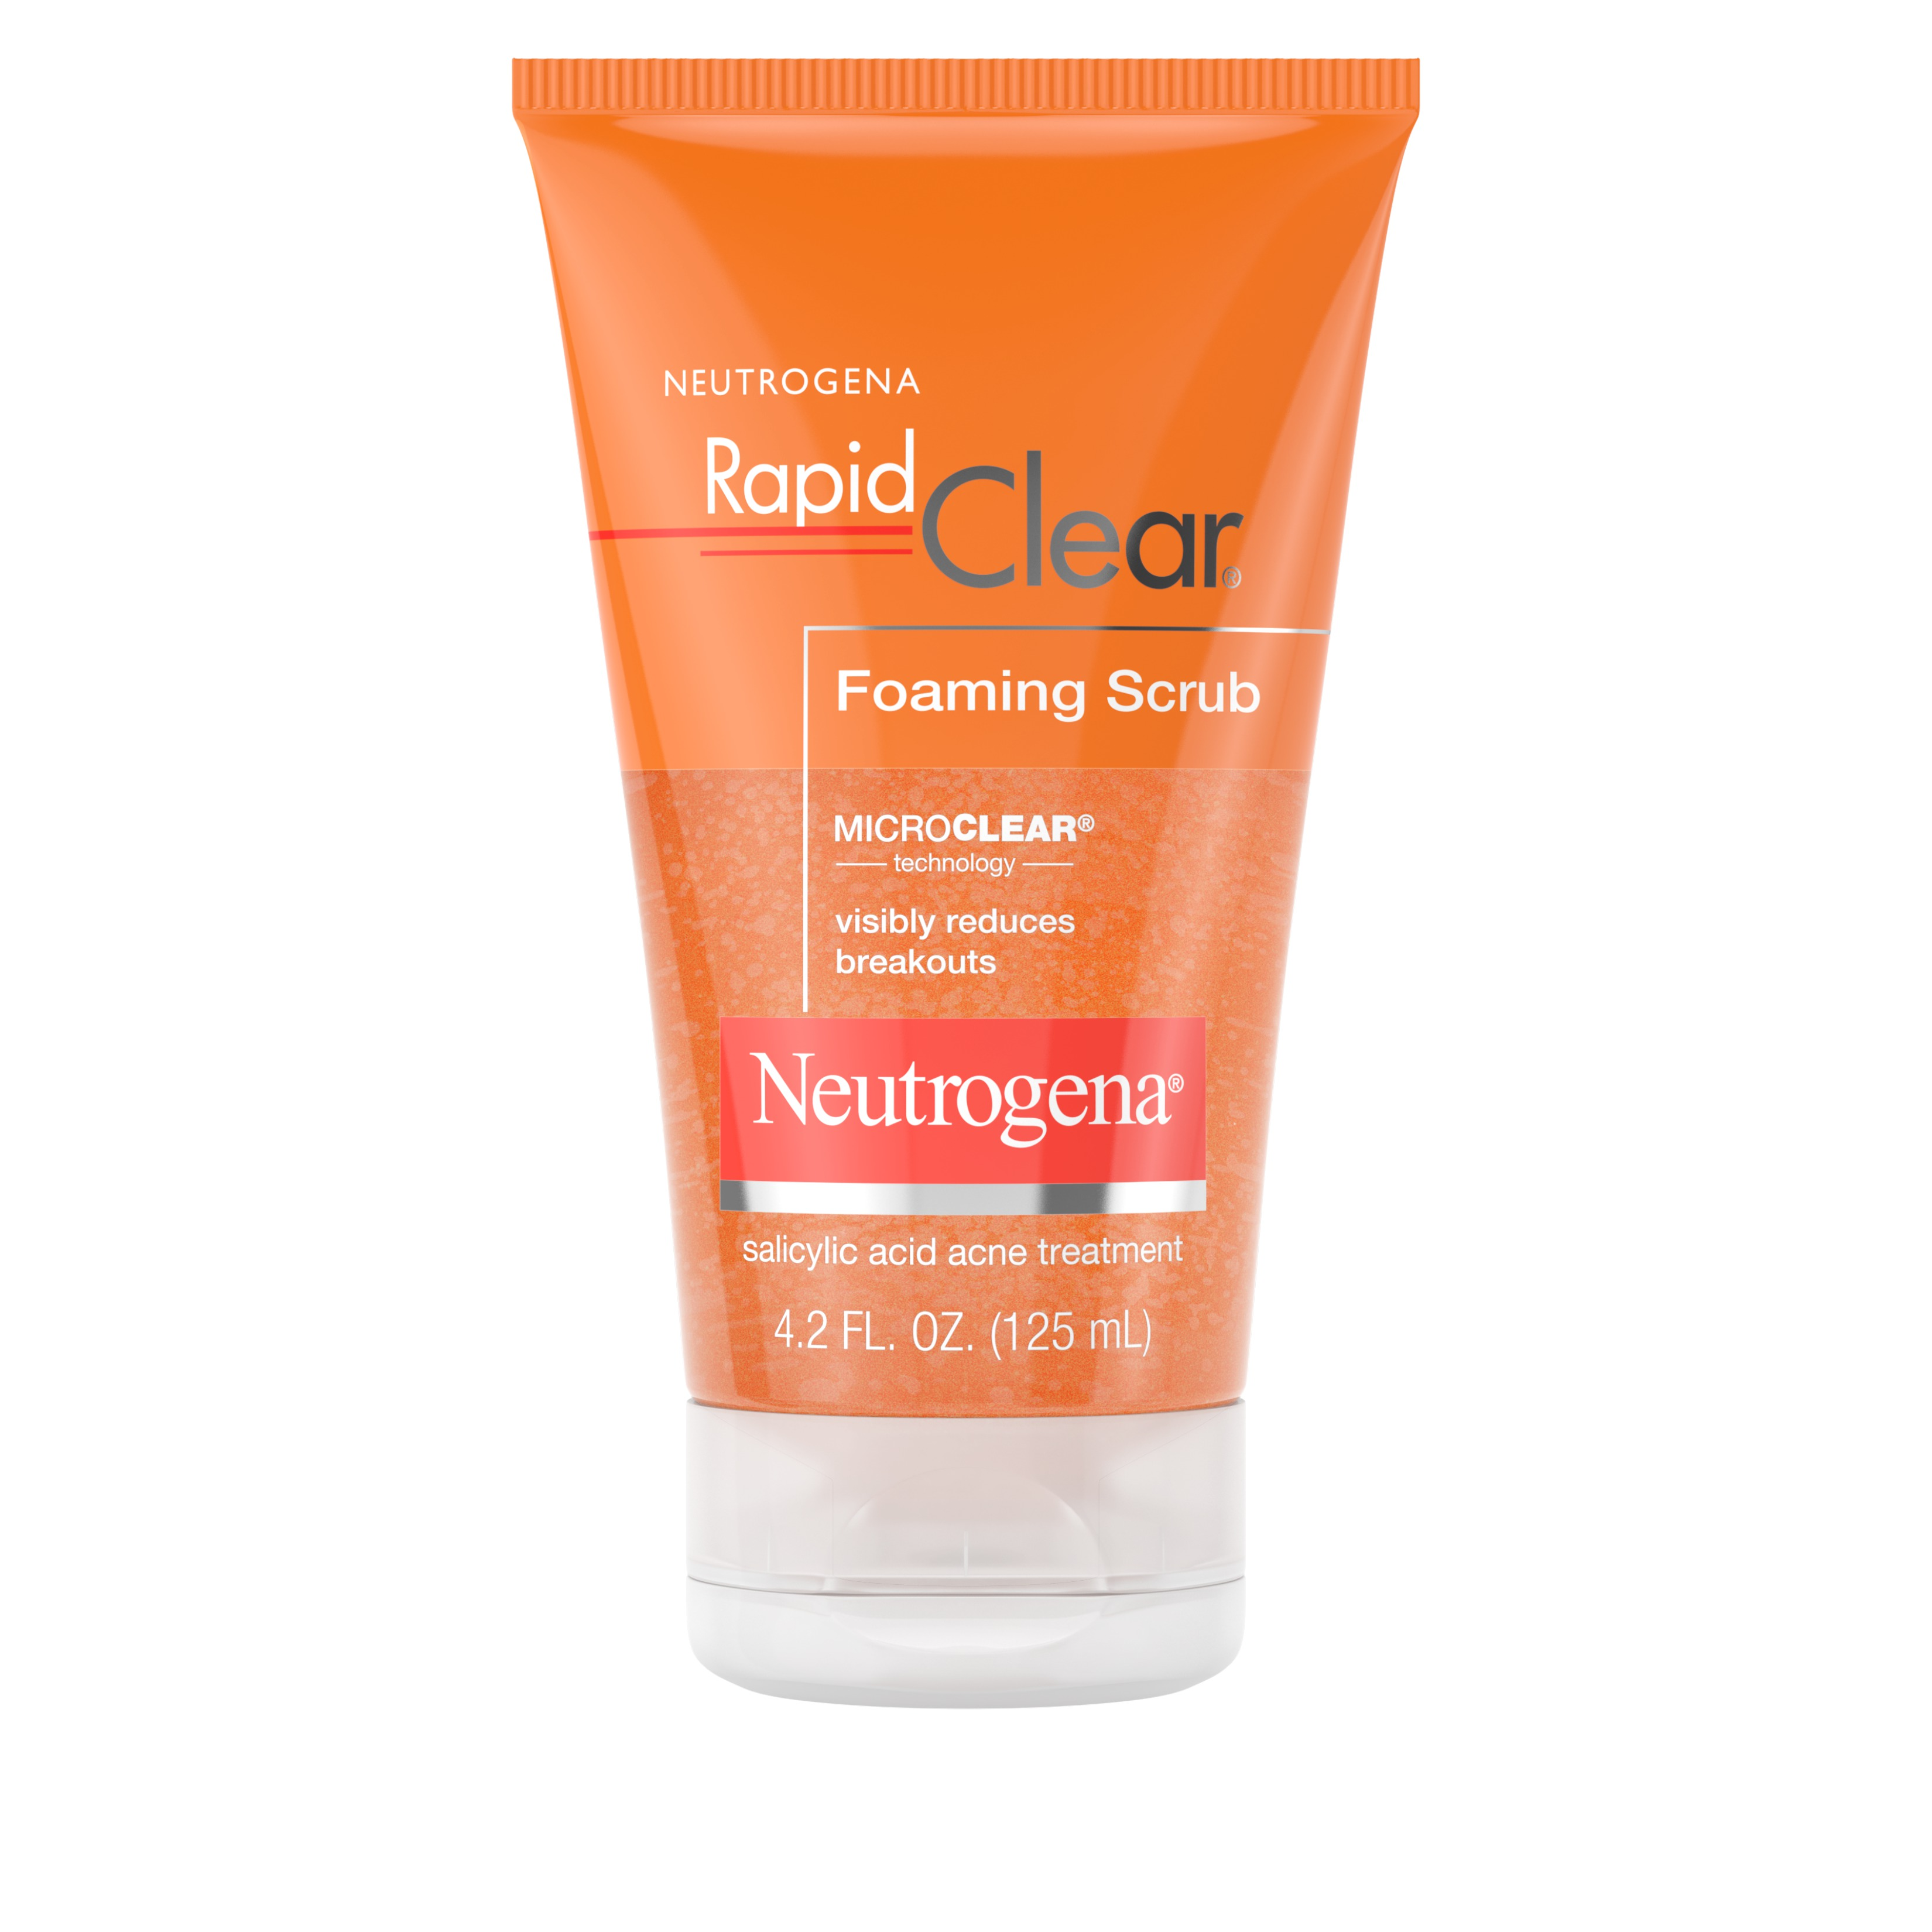 Neutrogena Rapid Clear Foaming Salicylic Acid Facial Scrub, 4.2 fl. oz